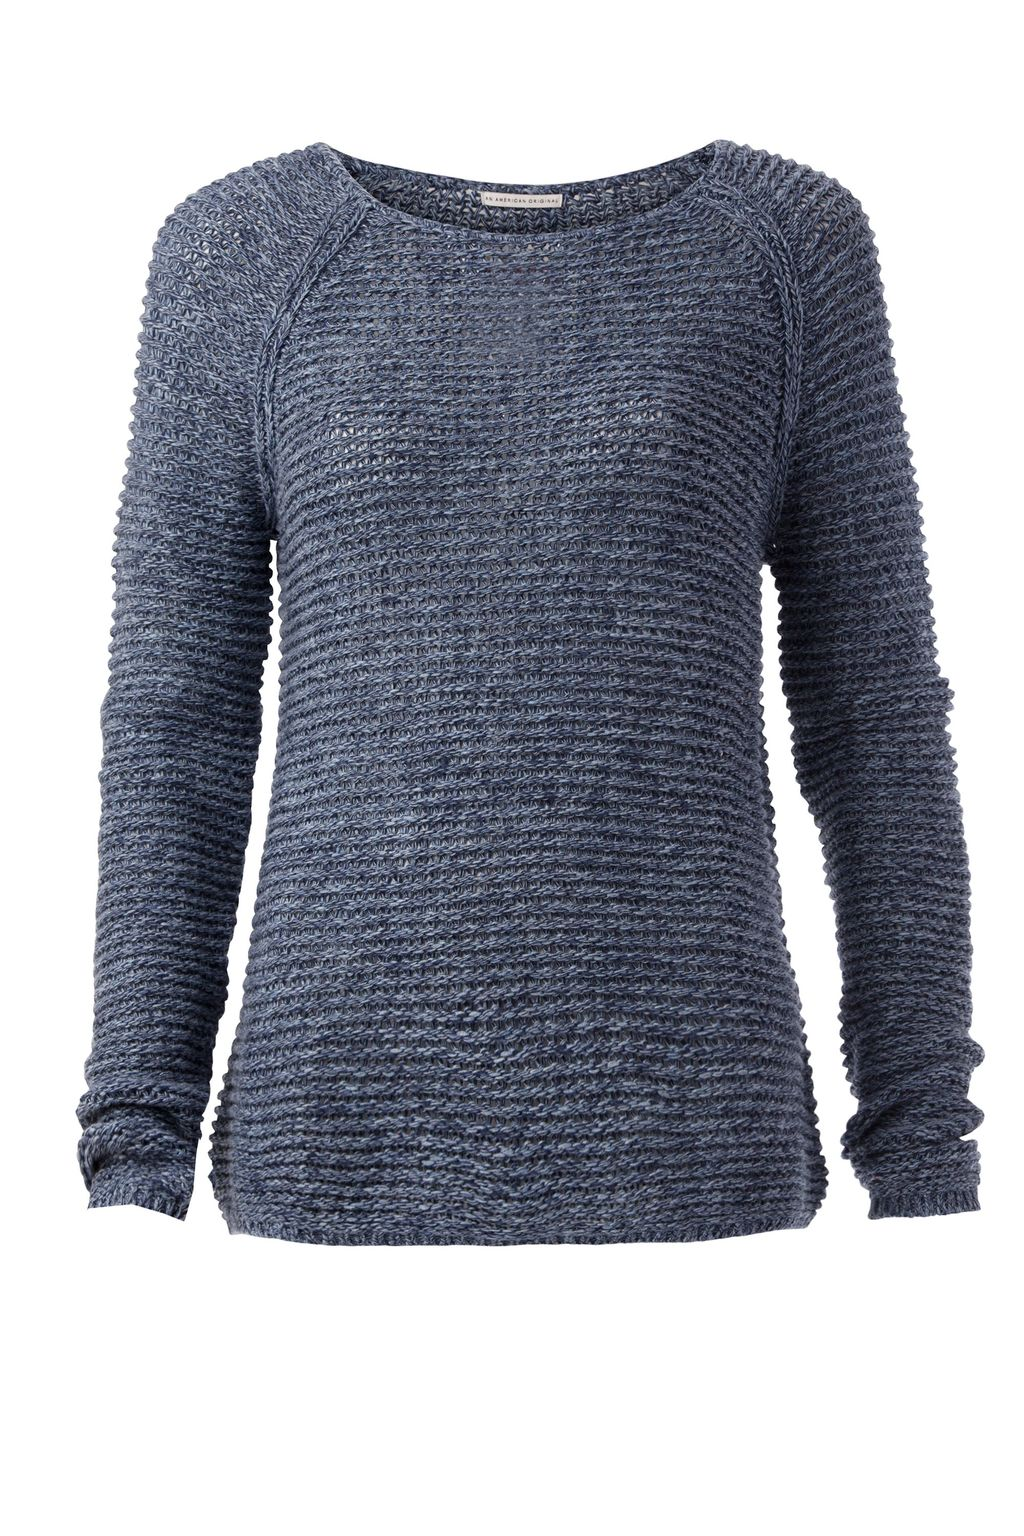 Basic Twisted Sweater, Navy - pattern: plain; style: standard; predominant colour: navy; occasions: casual; length: standard; fibres: cotton - 100%; fit: slim fit; neckline: crew; sleeve length: long sleeve; sleeve style: standard; texture group: knits/crochet; pattern type: fabric; season: s/s 2016; wardrobe: basic